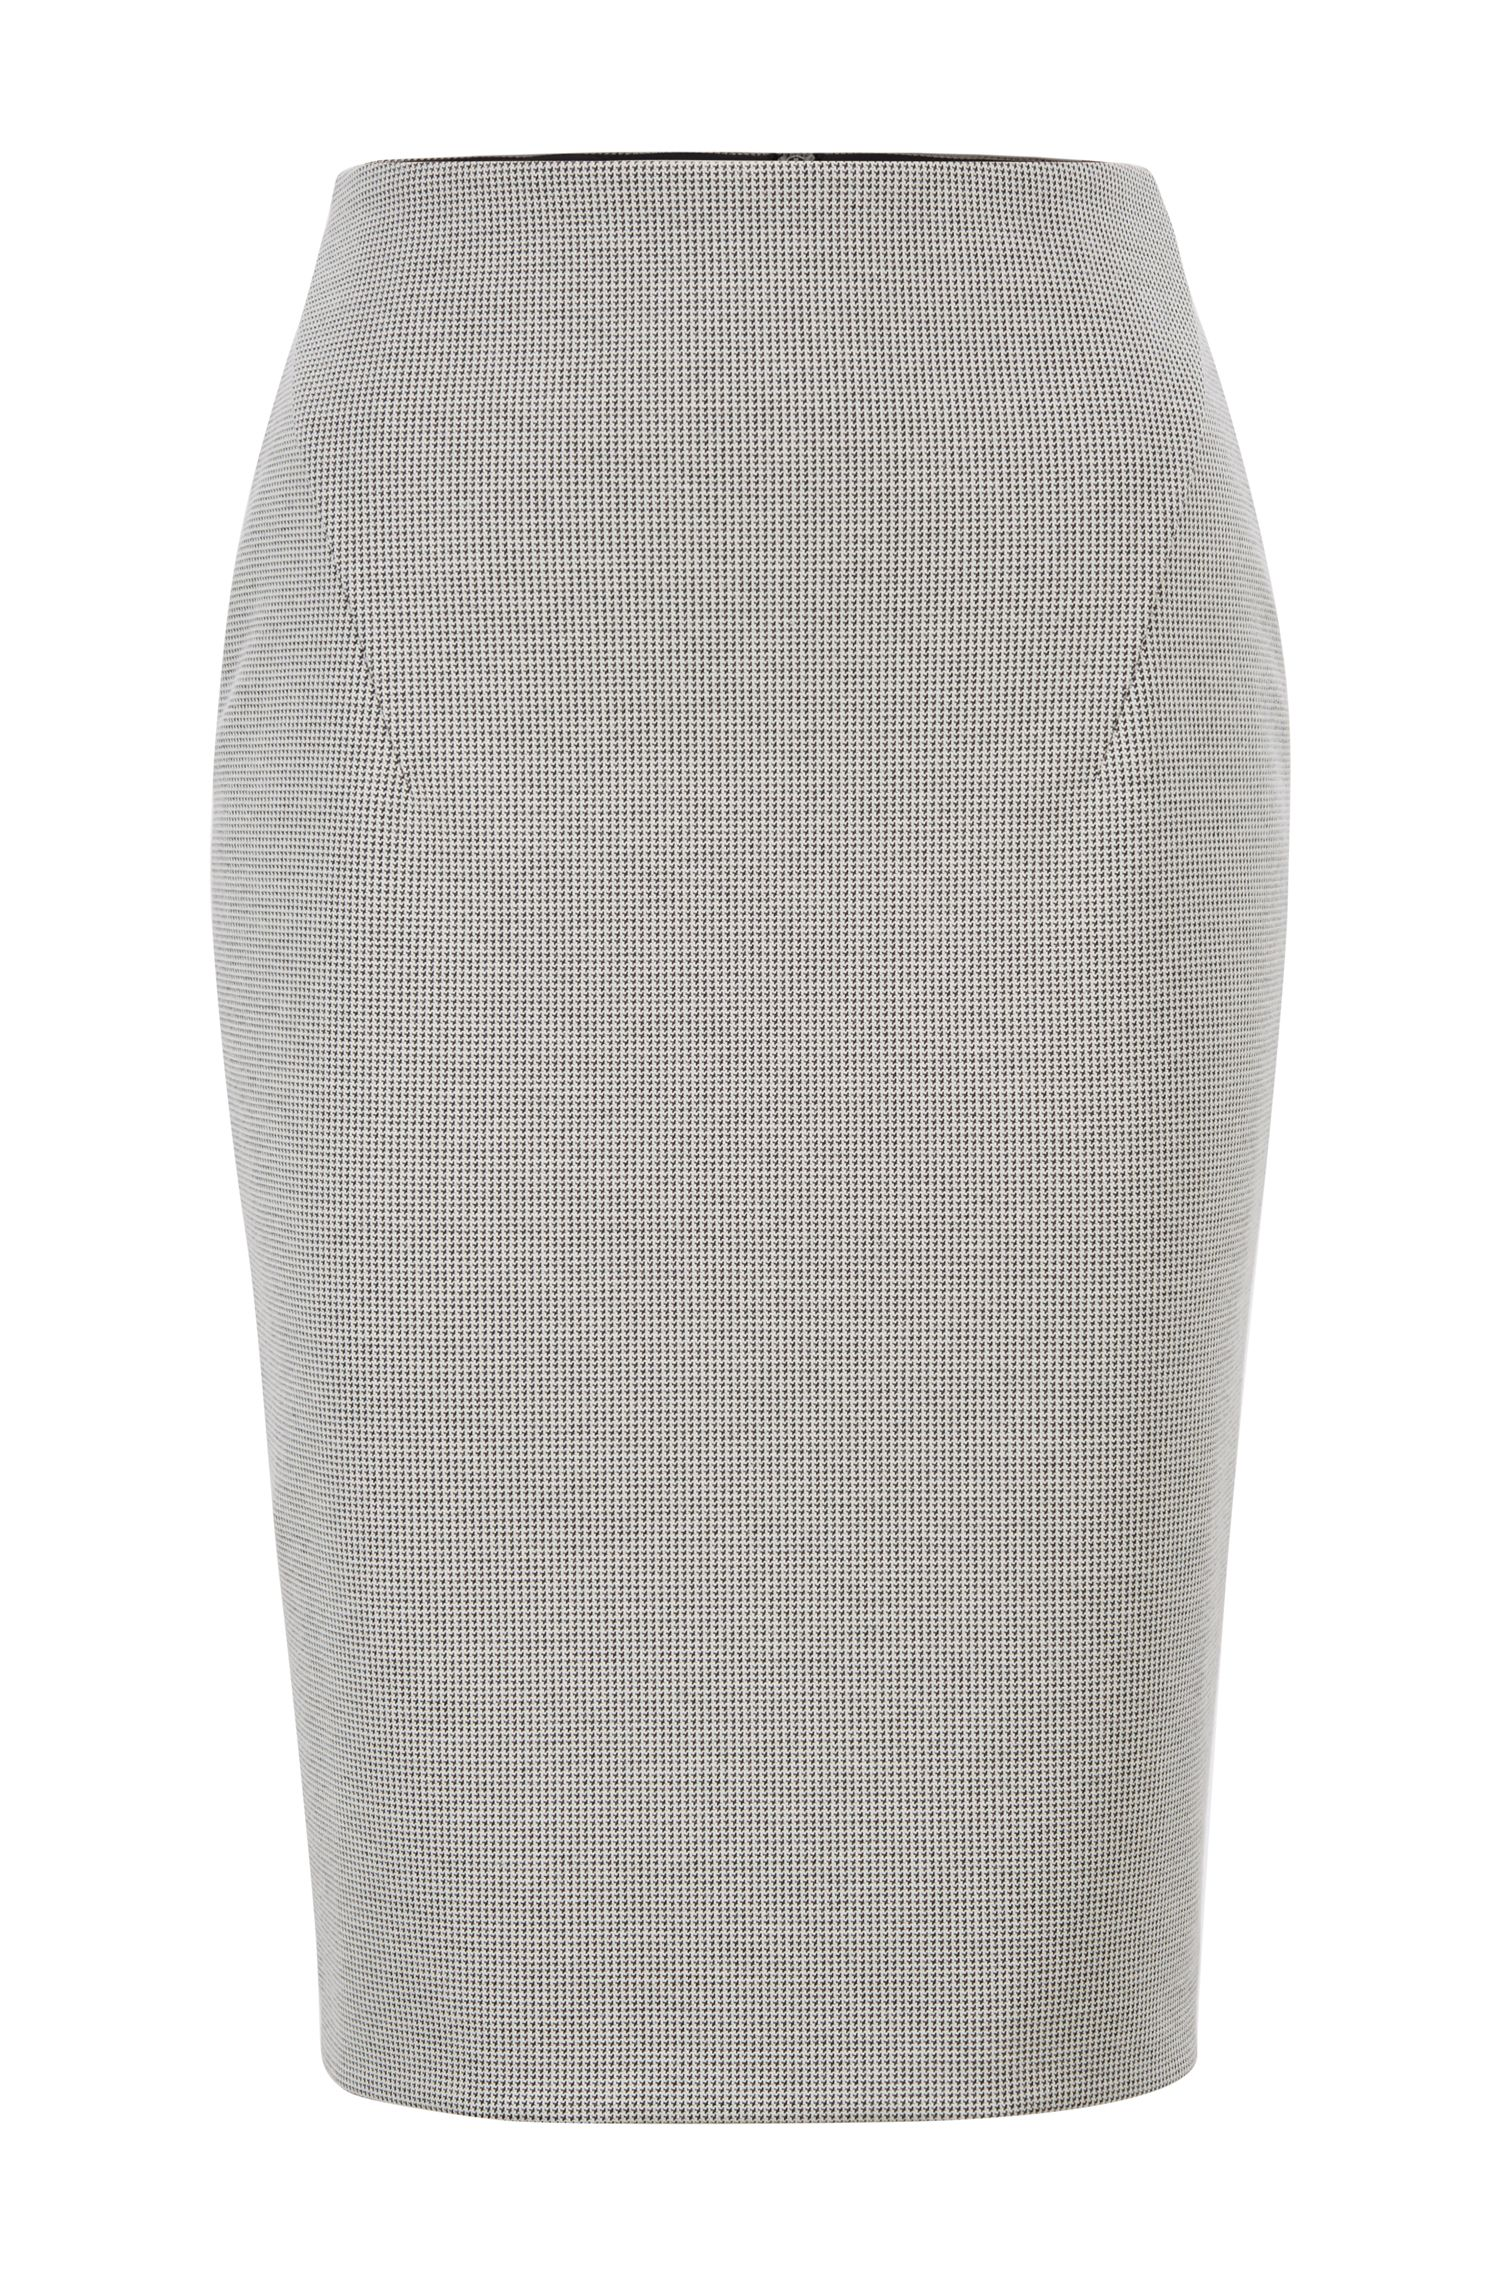 Pencil skirt in Italian jersey with full rear zip, Patterned